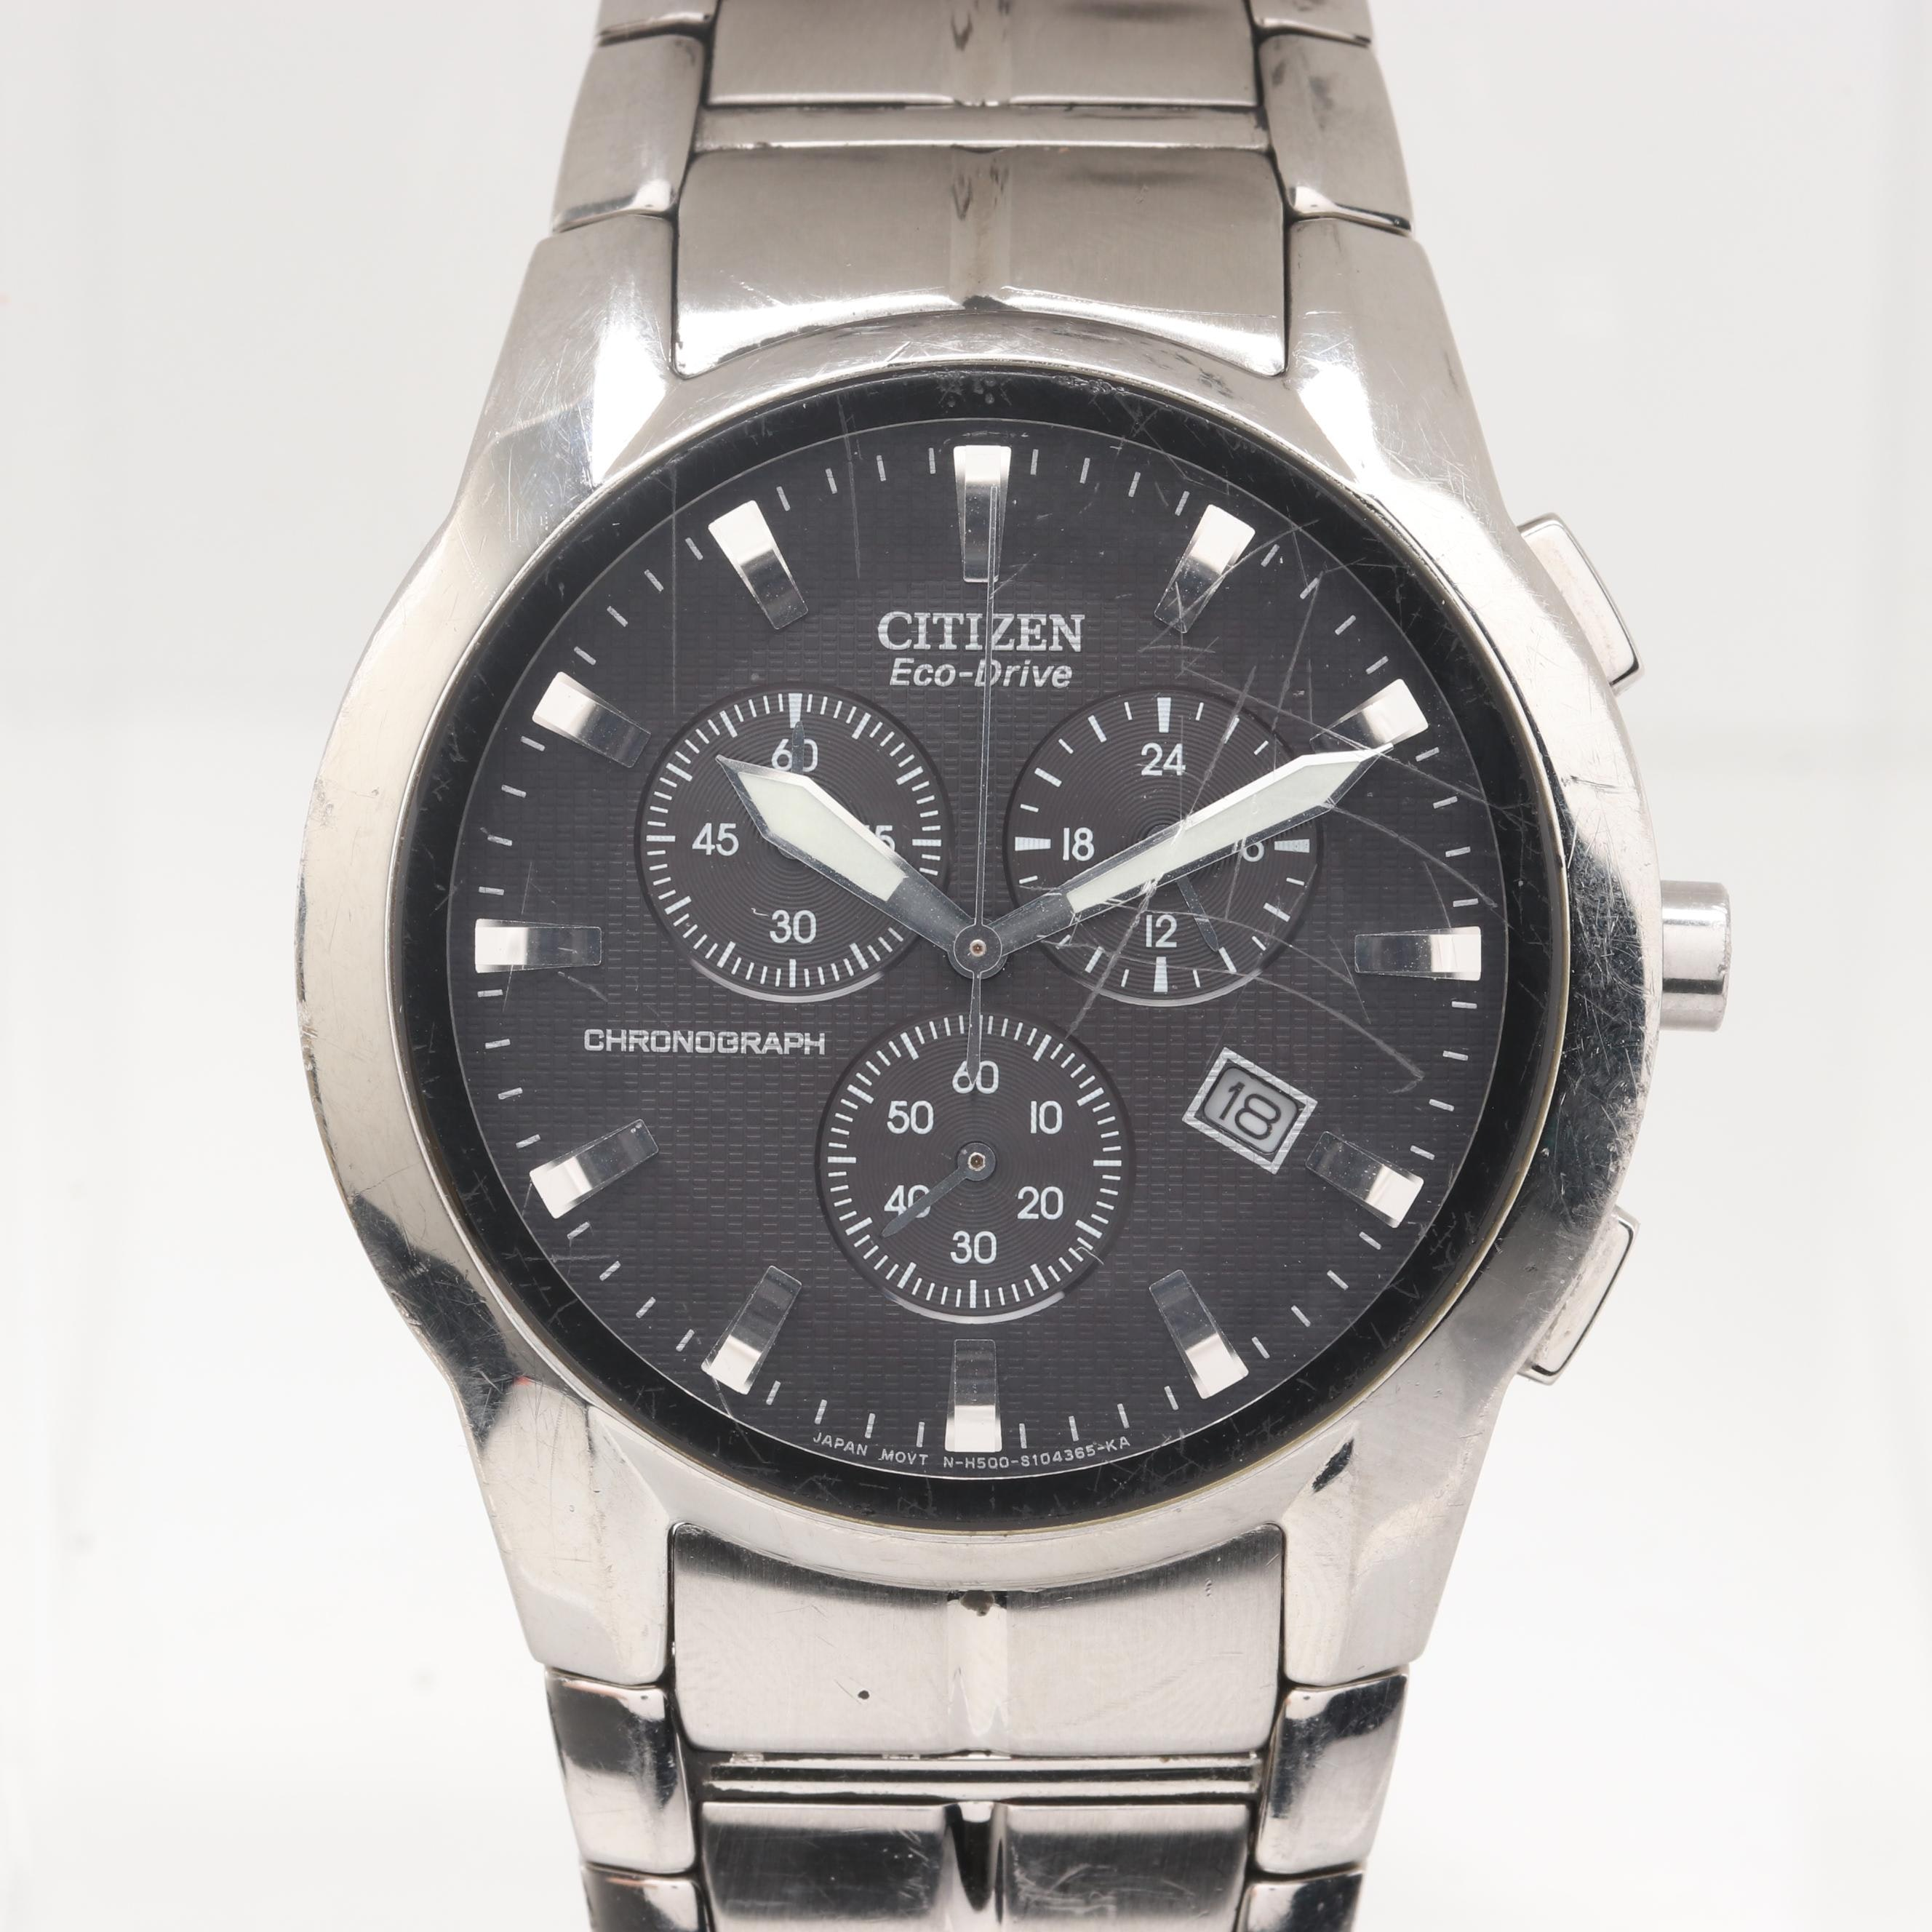 Citizen Eco-Drive Stainless Steel Chronograph Wristwatch